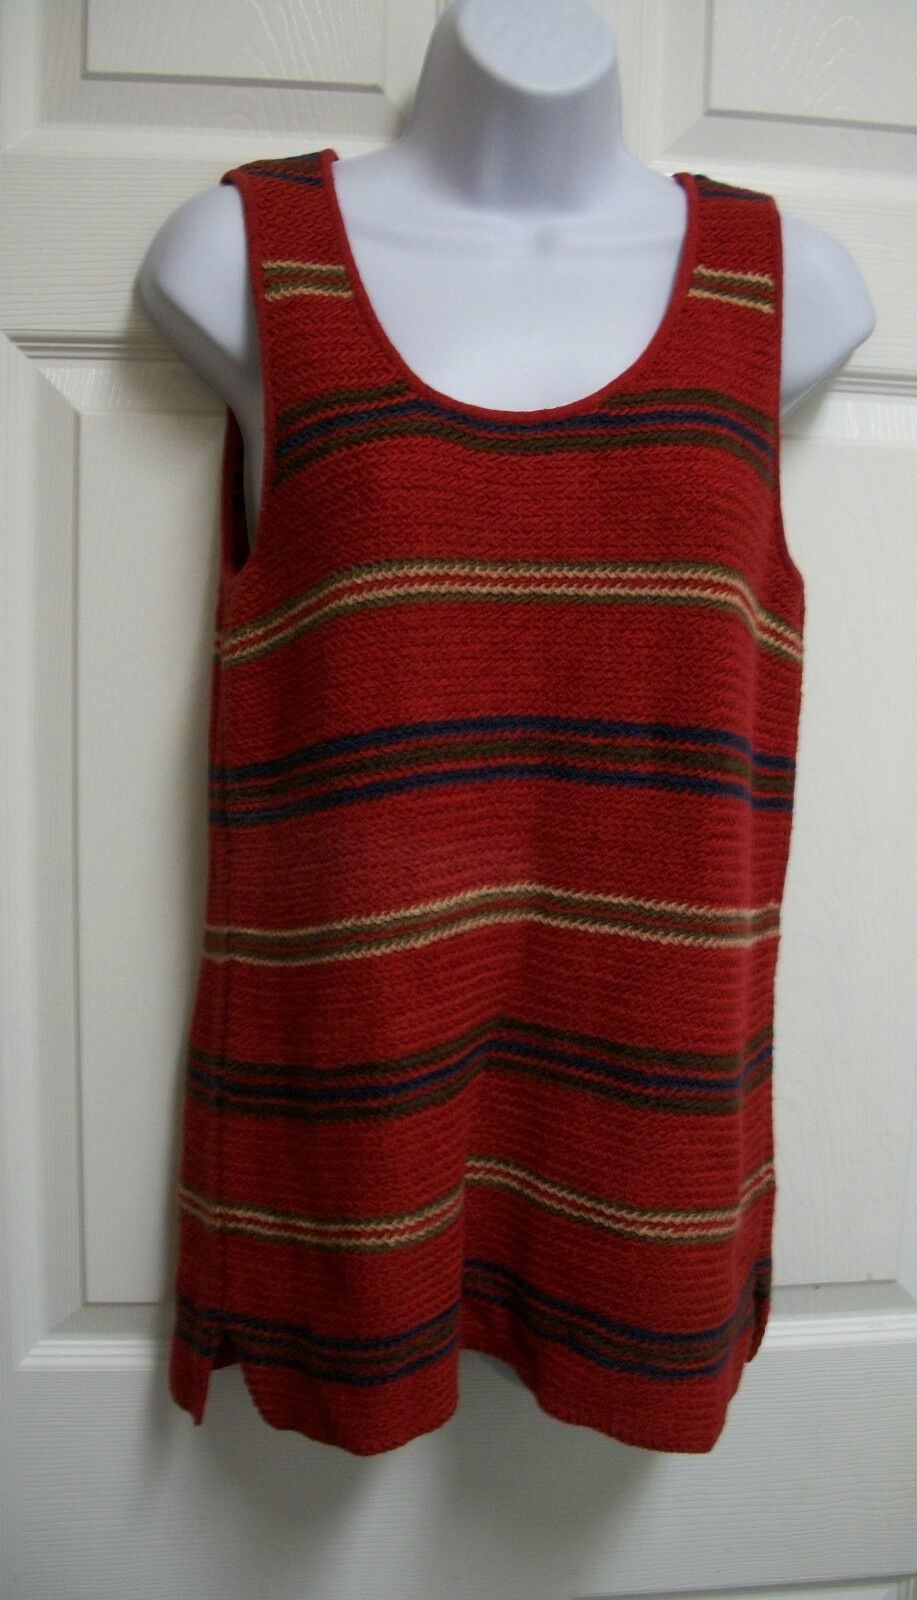 RALPH LAUREN SOUTHWESTERN INDIAN INDIAN INDIAN BLANKET COTTON LINEN SLEEVELESS SWEATER TOP M a9924a